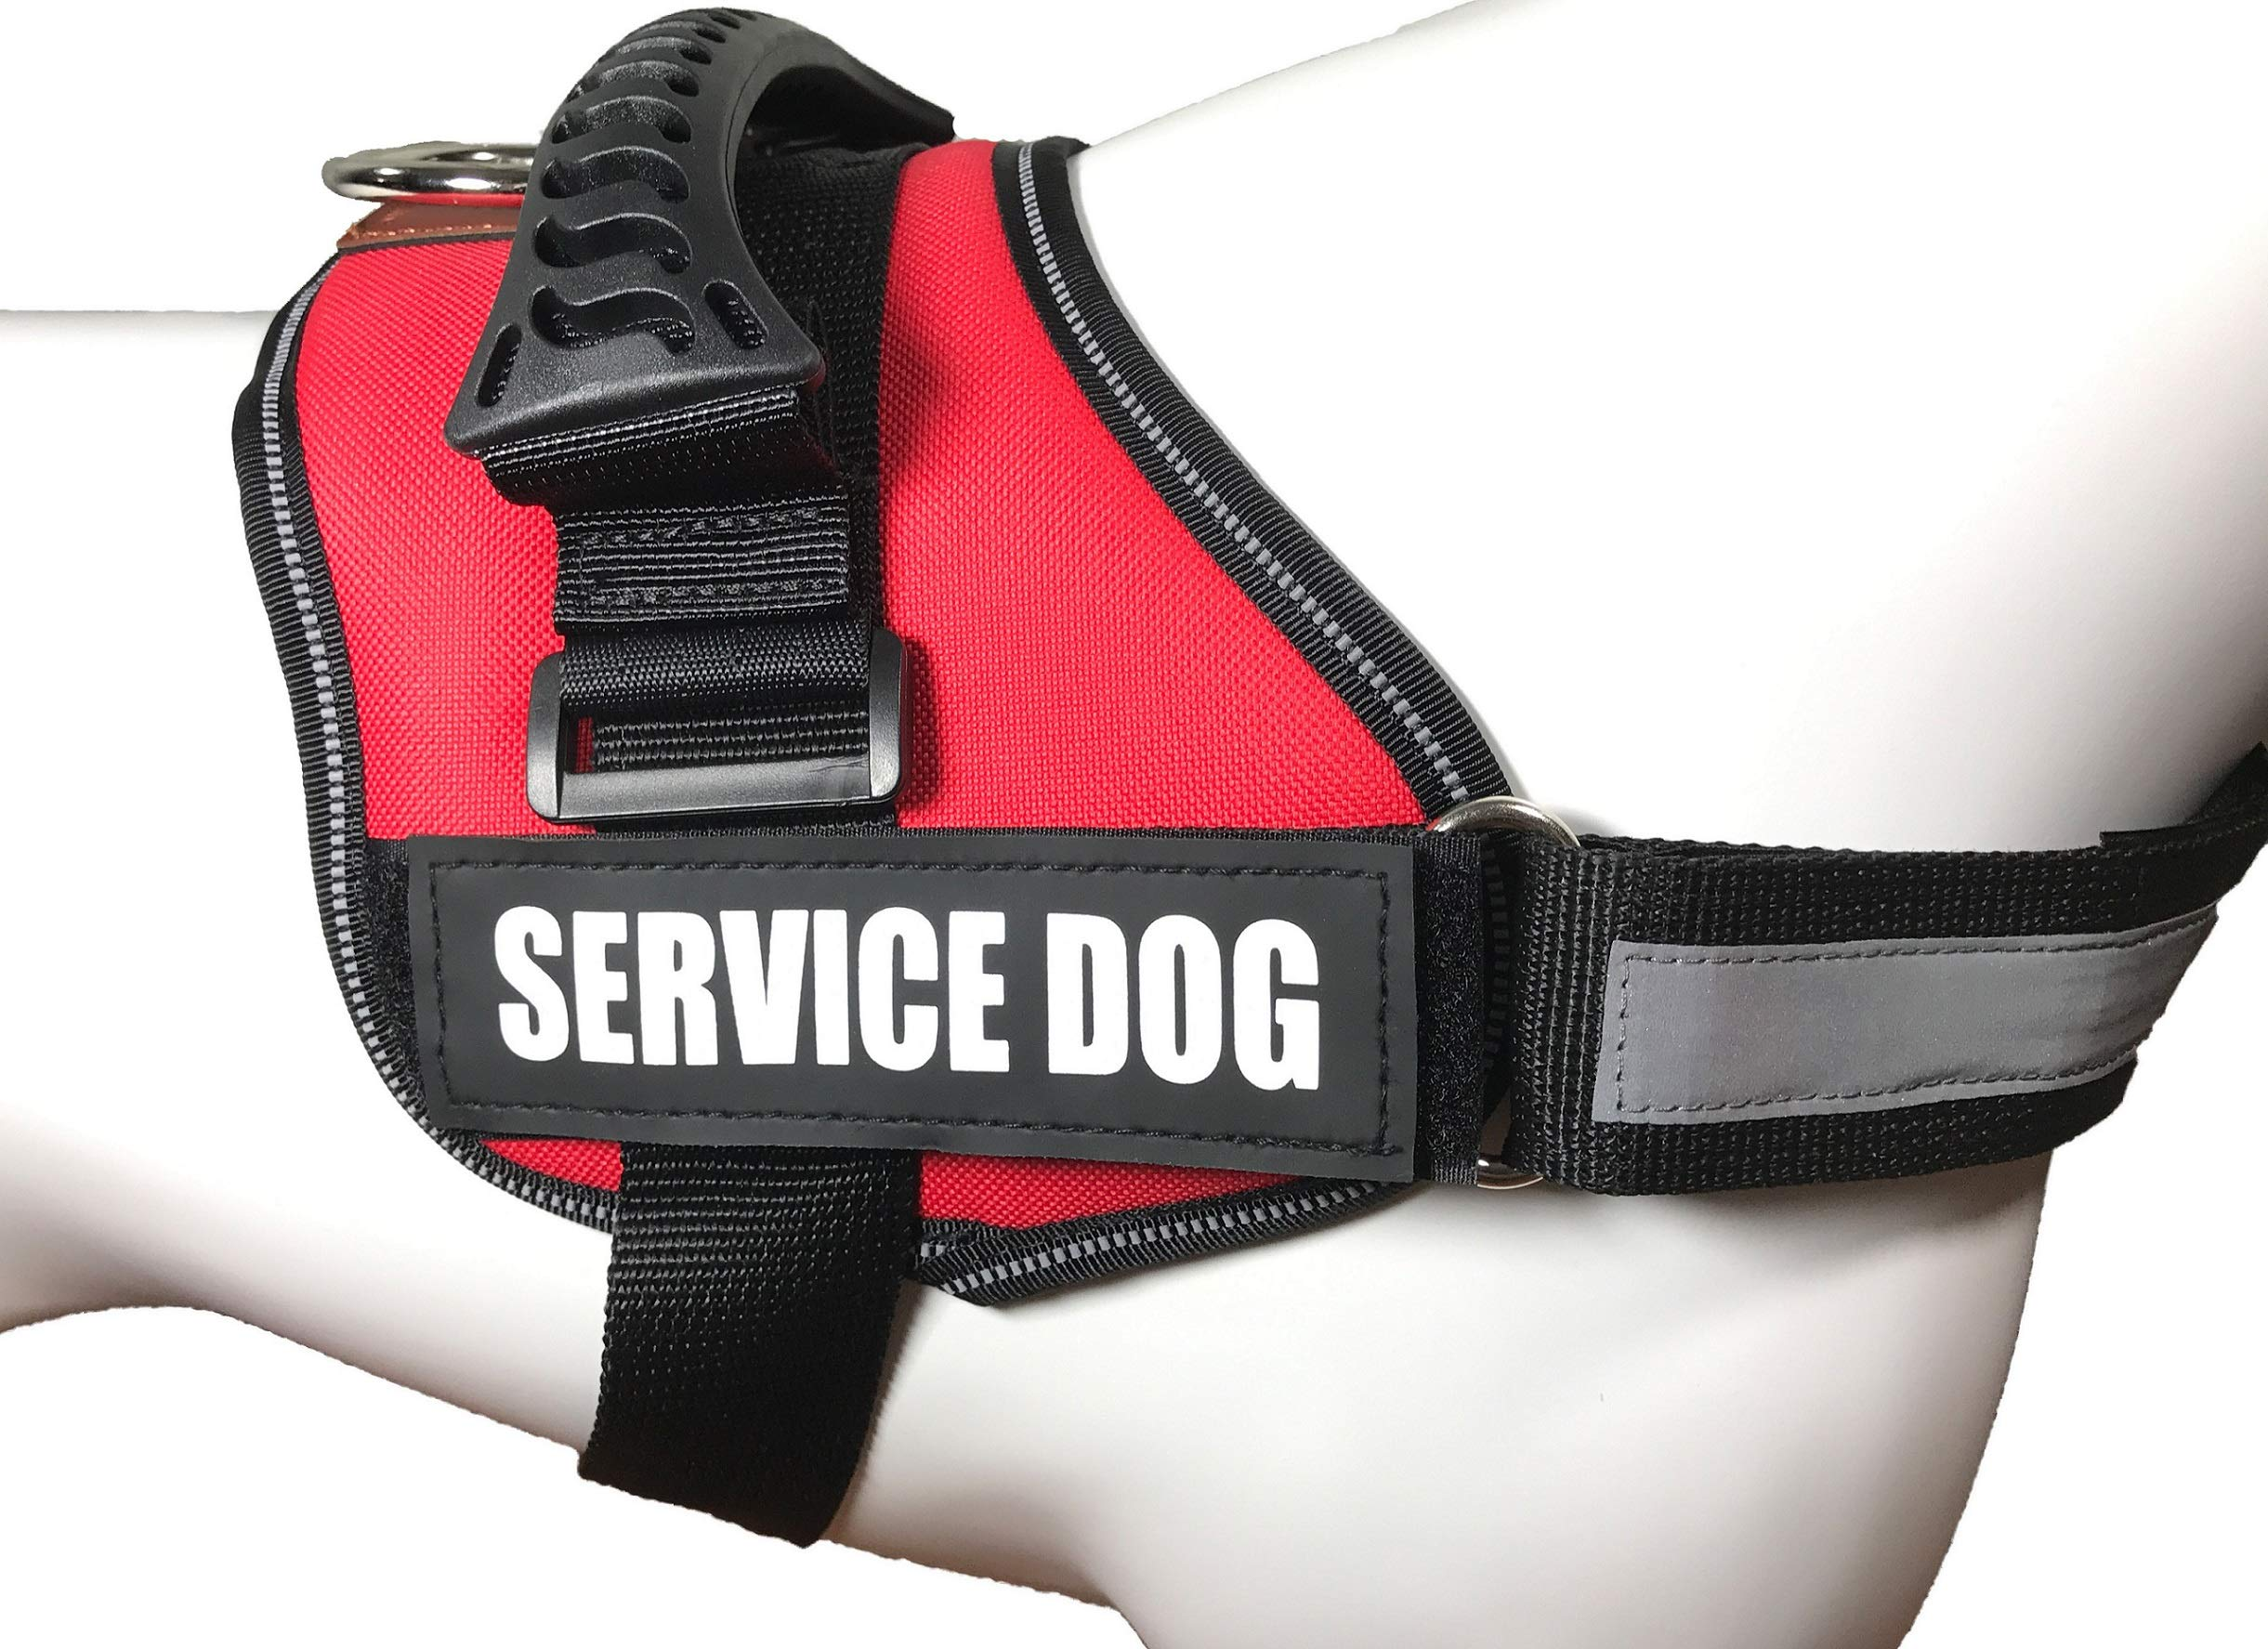 ALBCORP Service Dog Vest Harness - Reflective - Woven Polyester & Nylon, Comfy Mesh Padding, Large, RED by ALBCORP